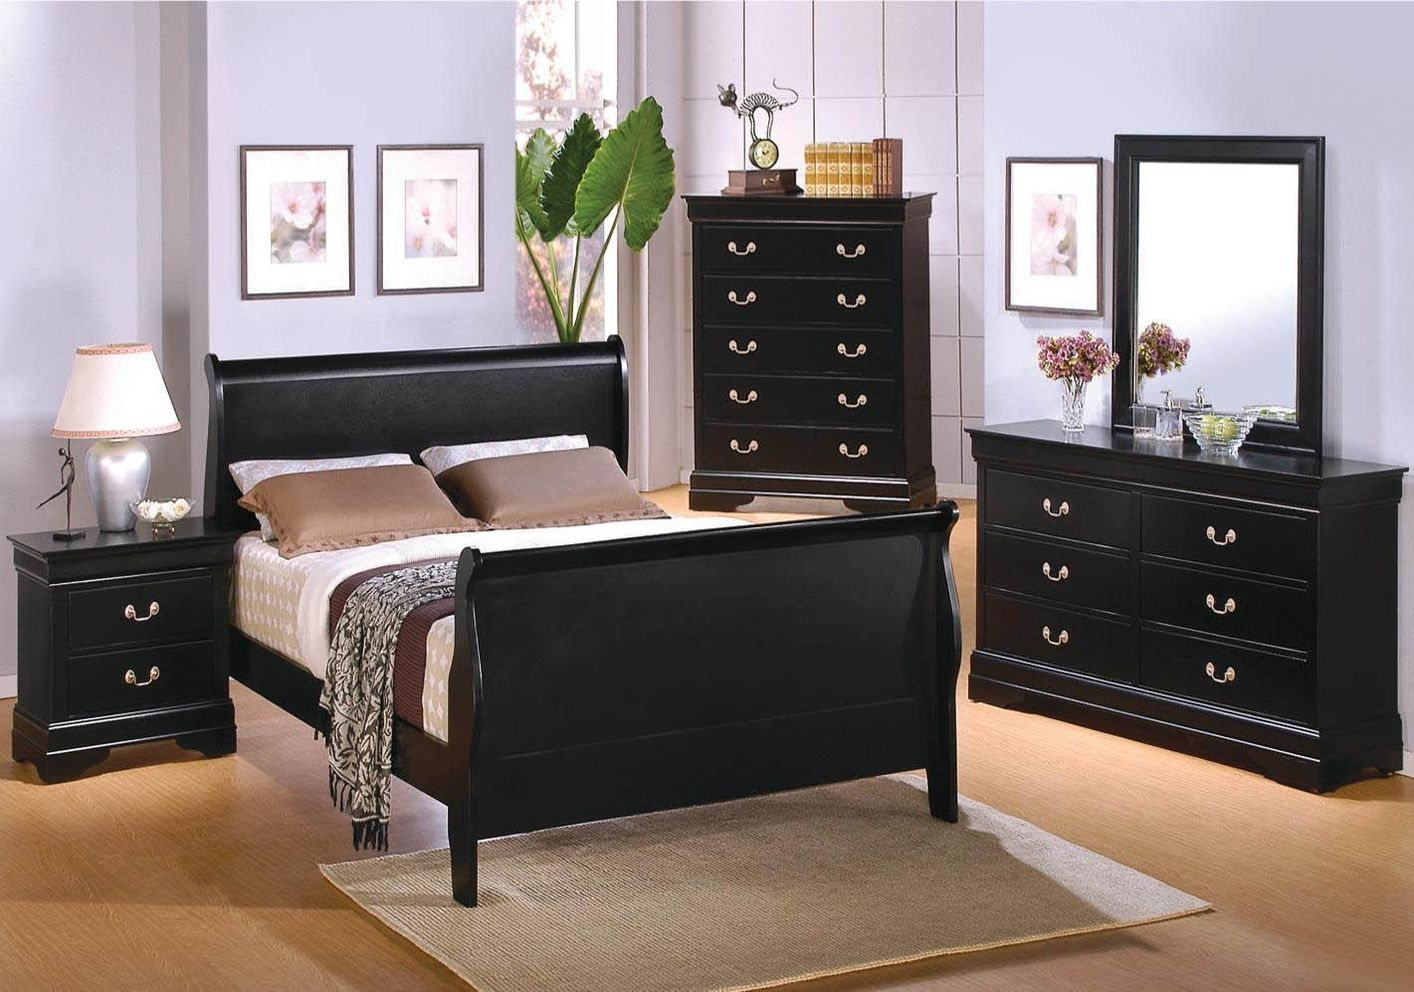 Coaster Black Wood Queen Size Bed Steal A Sofa Furniture